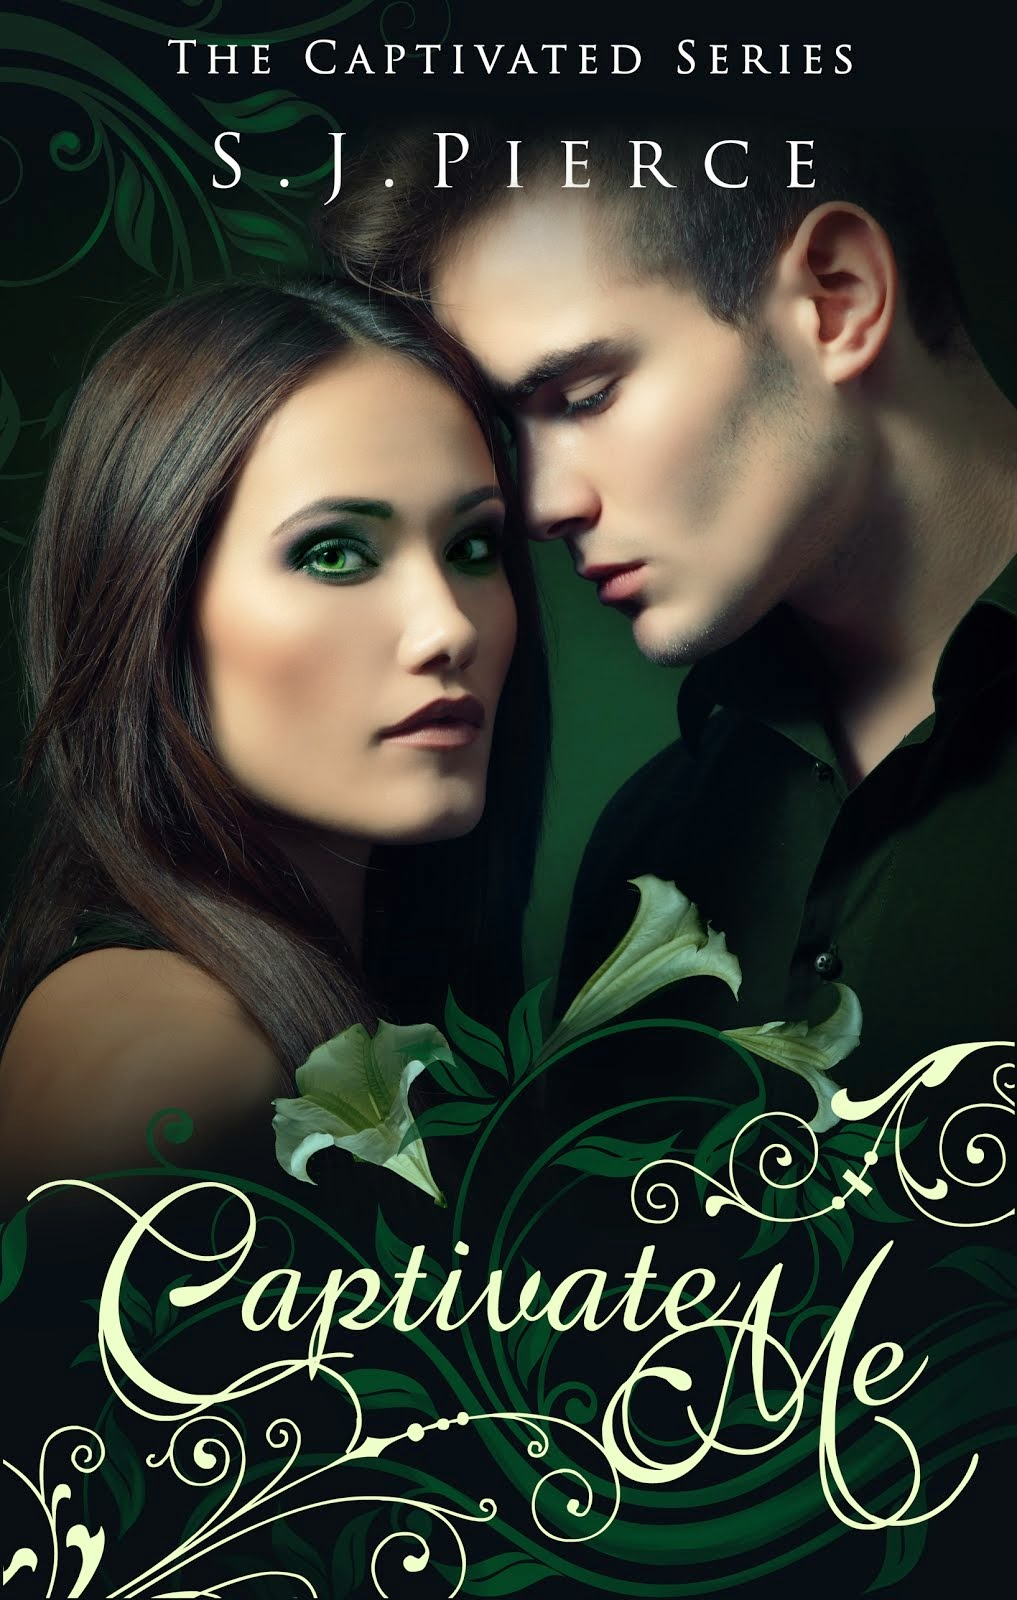 Book One: The Captivated Series